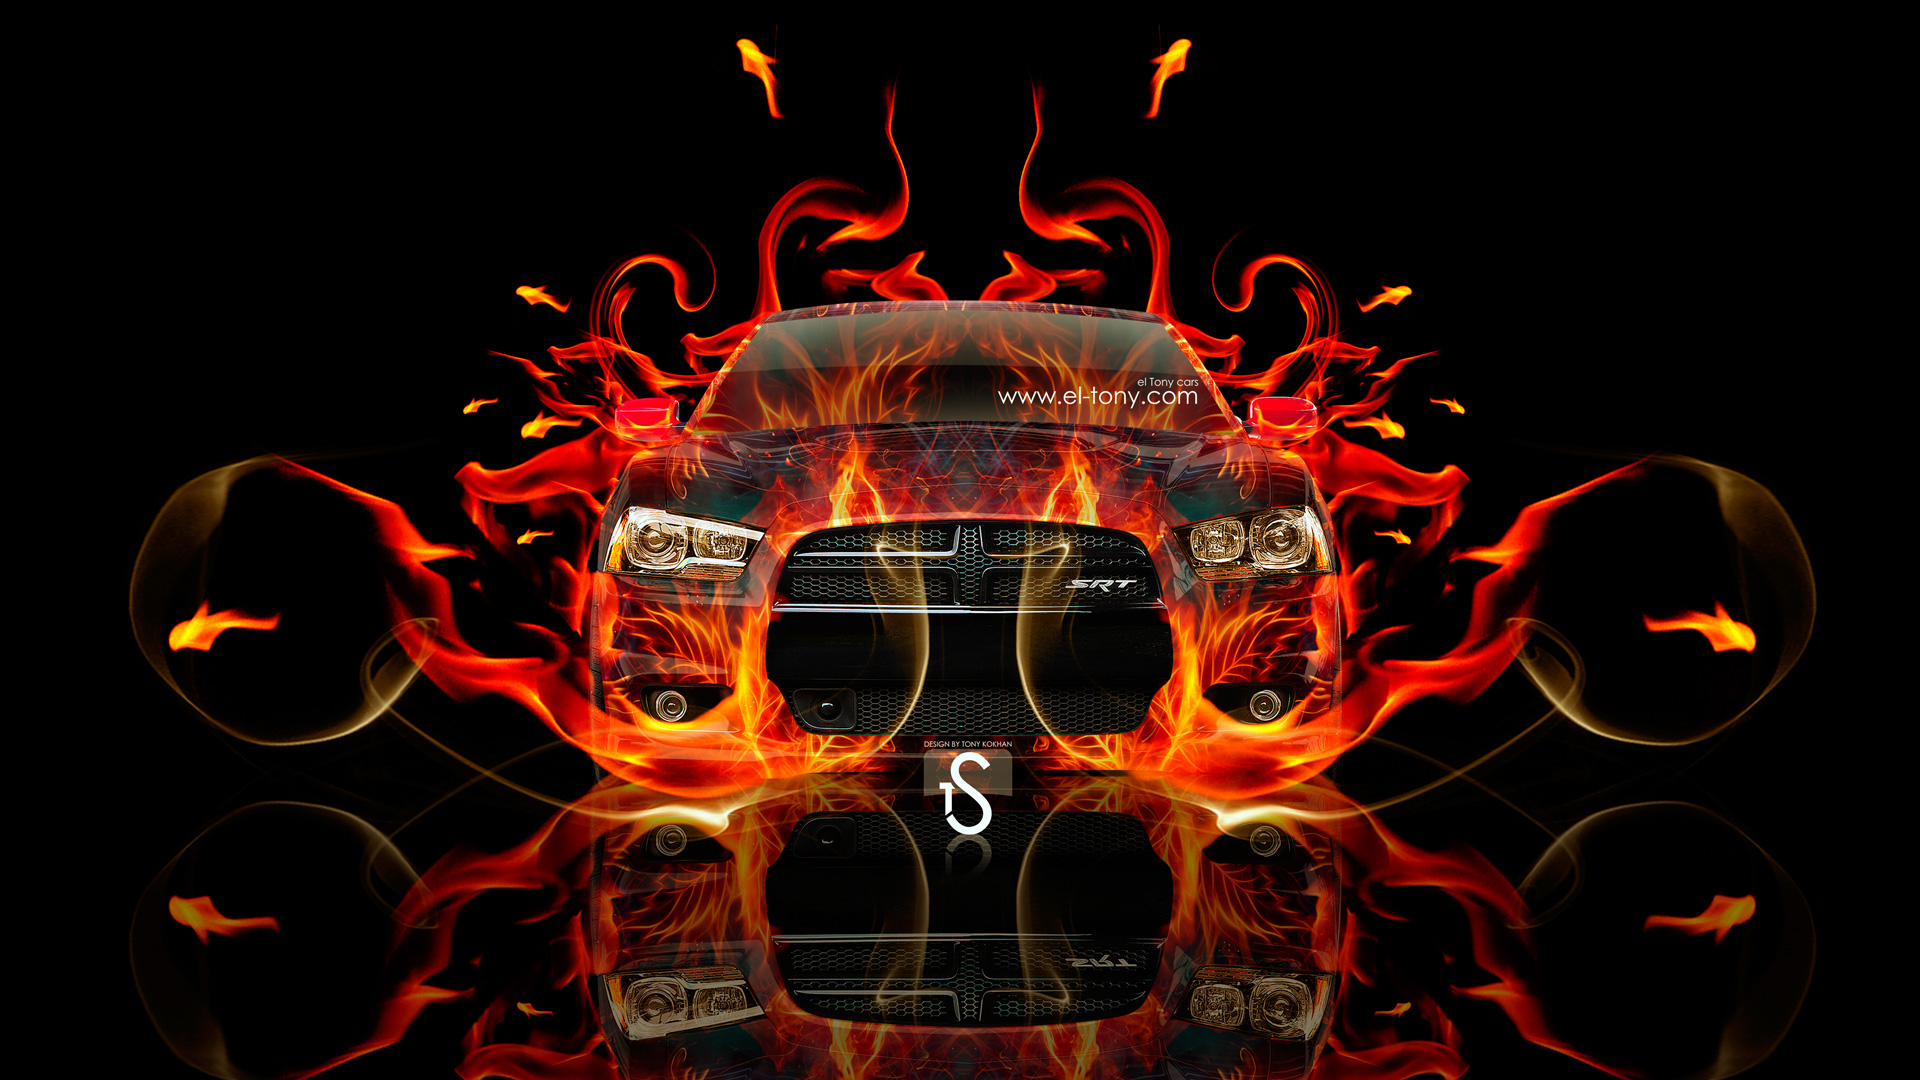 ... Dodge Charger SRT/8 Fire Abstract Car 2013 | El Tony